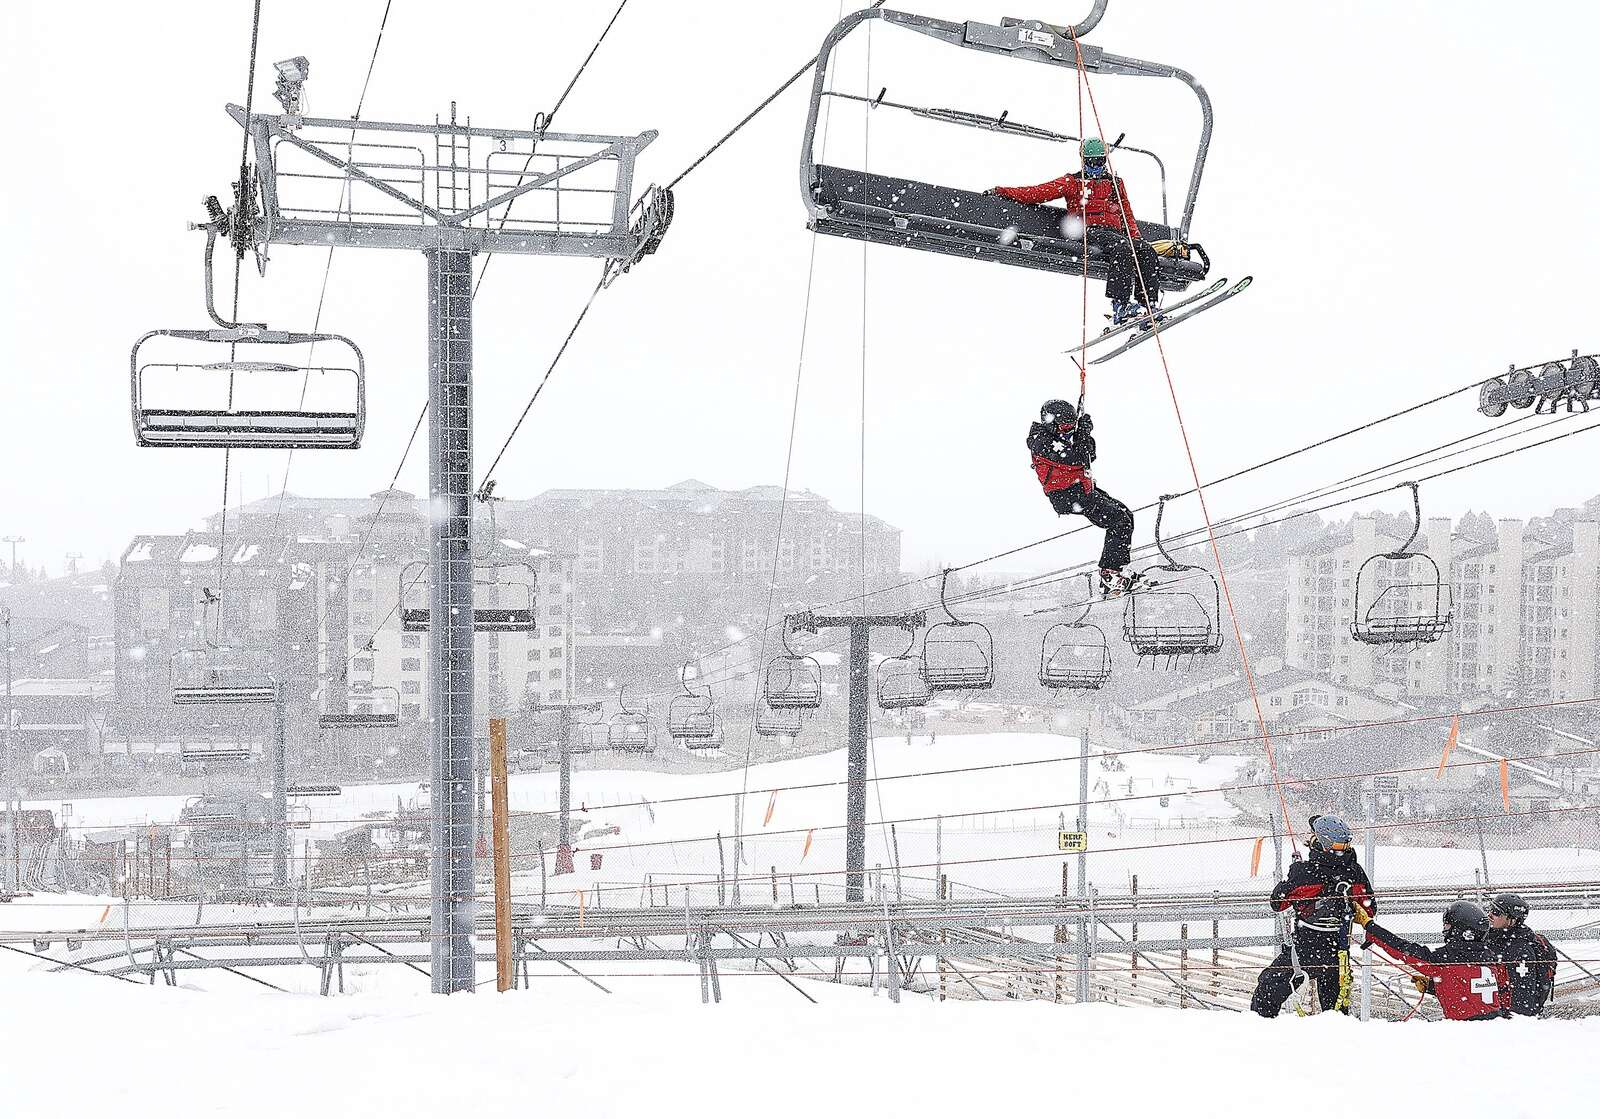 Colorado skier safety bill fails to make it out of committee vote